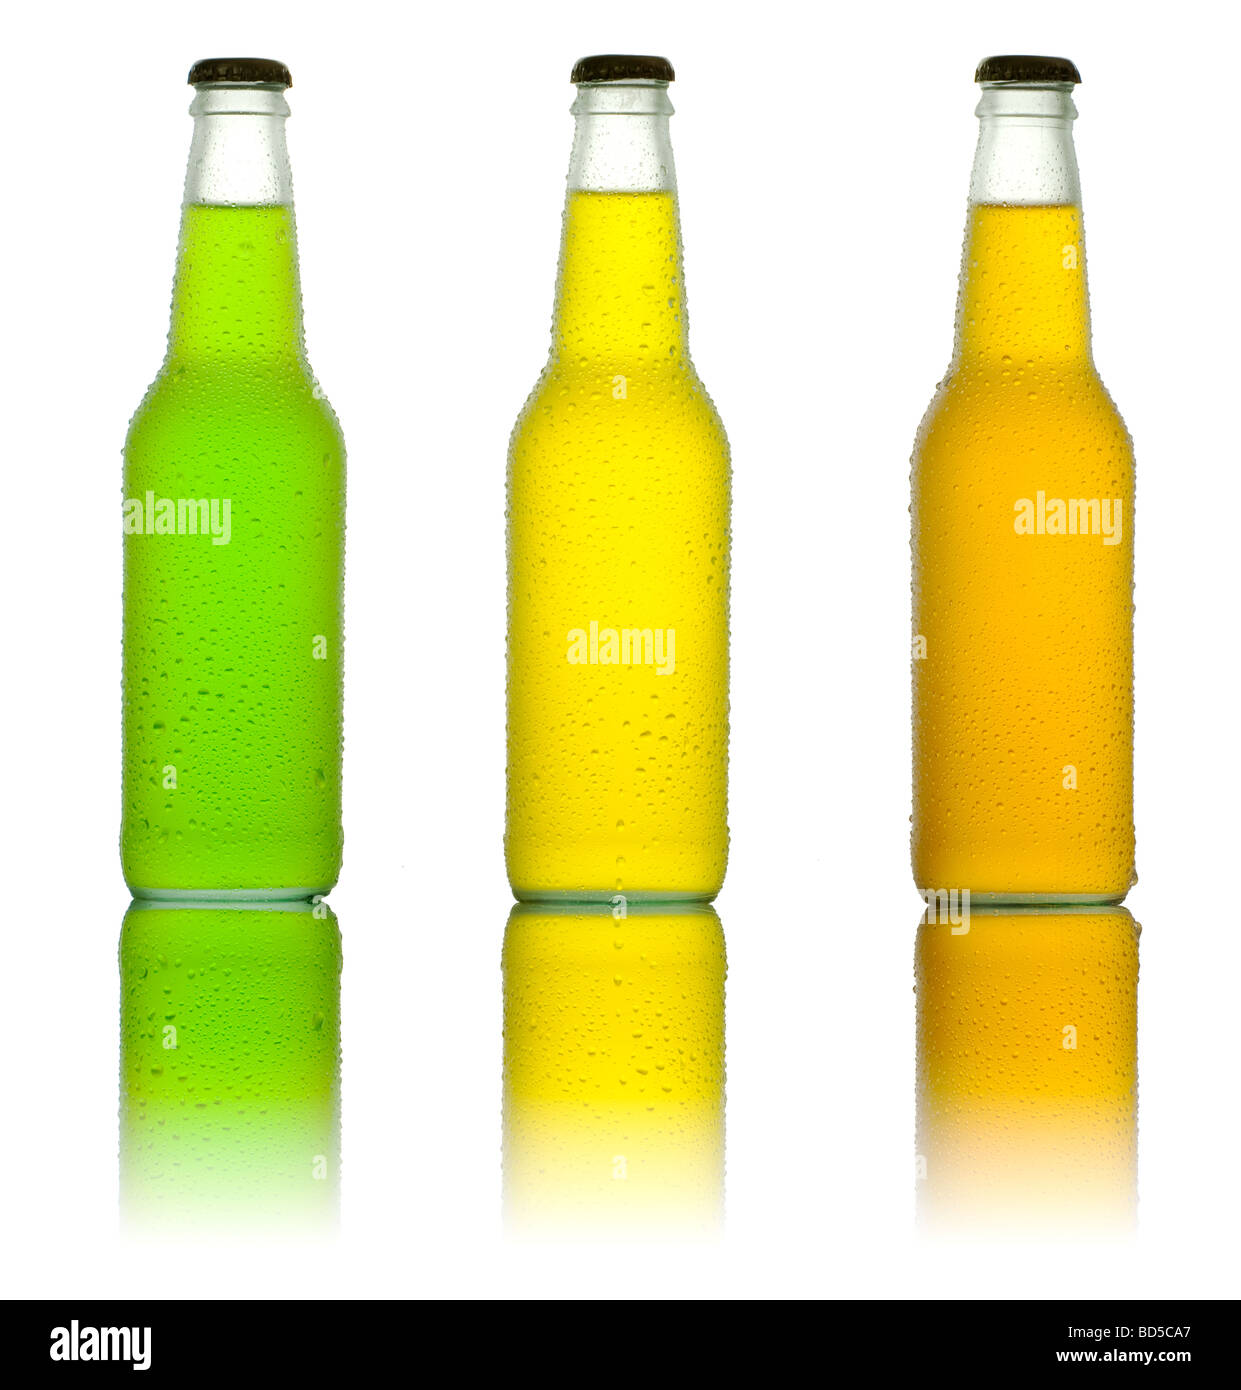 Three bottles with tropical drinks on white background - Stock Image